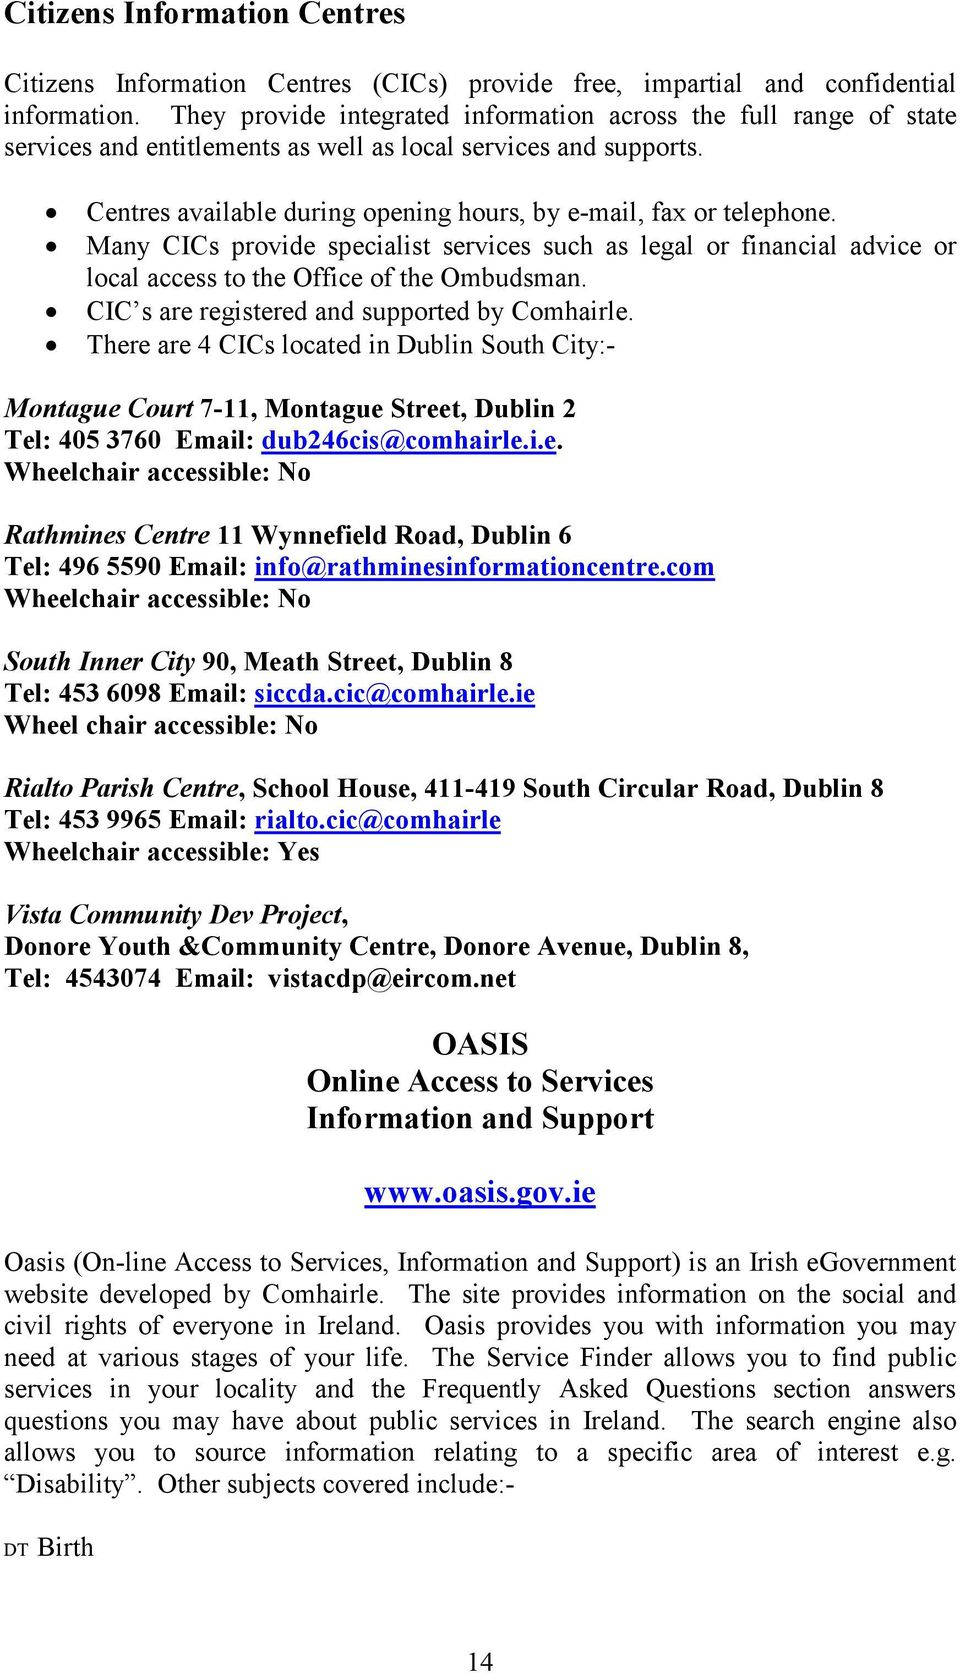 Centres available during opening hours, by e-mail, fax or telephone. Many CICs provide specialist services such as legal or financial advice or local access to the Office of the Ombudsman.